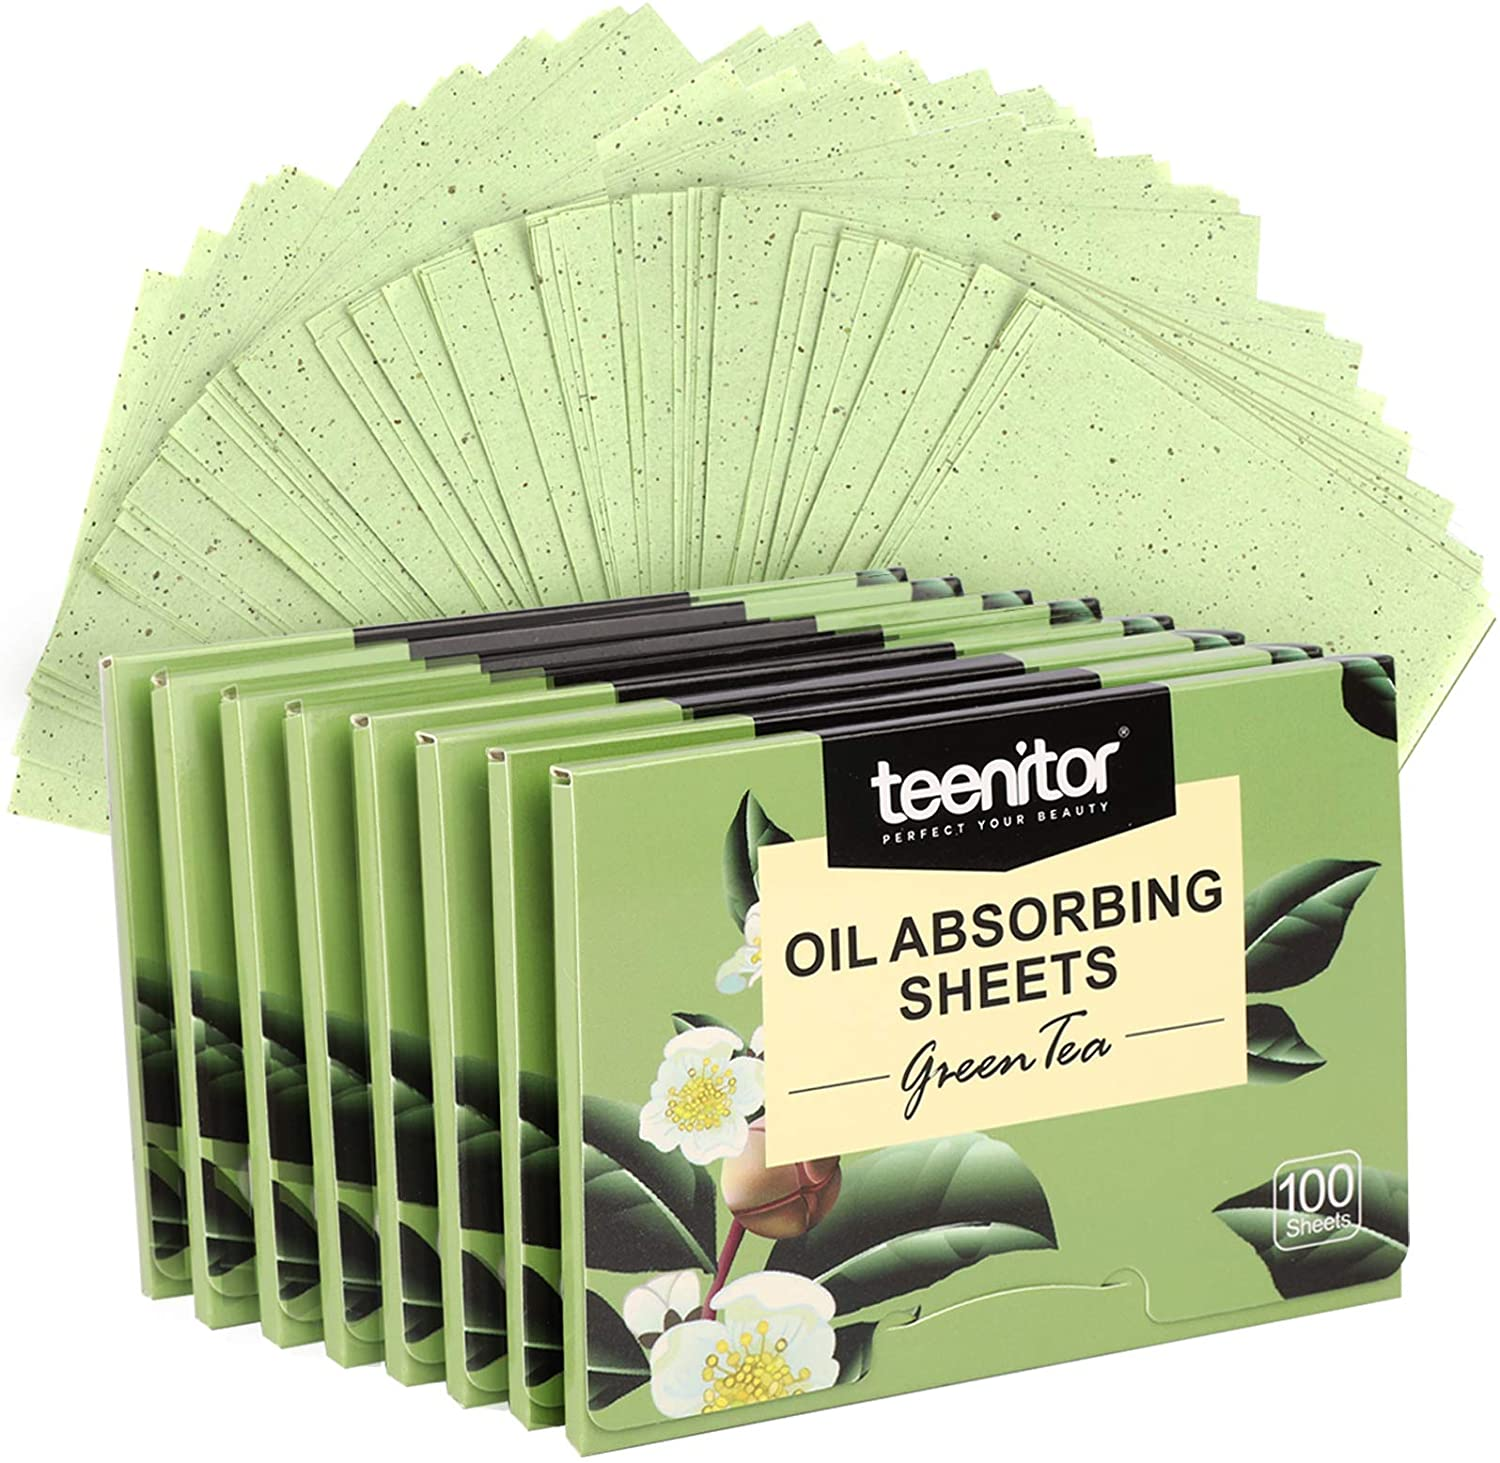 800 Counts Natural Green Tea Oil Control Film, Teenitor Oil Absorbing Sheets for Oily Skin Care, Blotting Paper to Remove Excess & Shine: Office Products